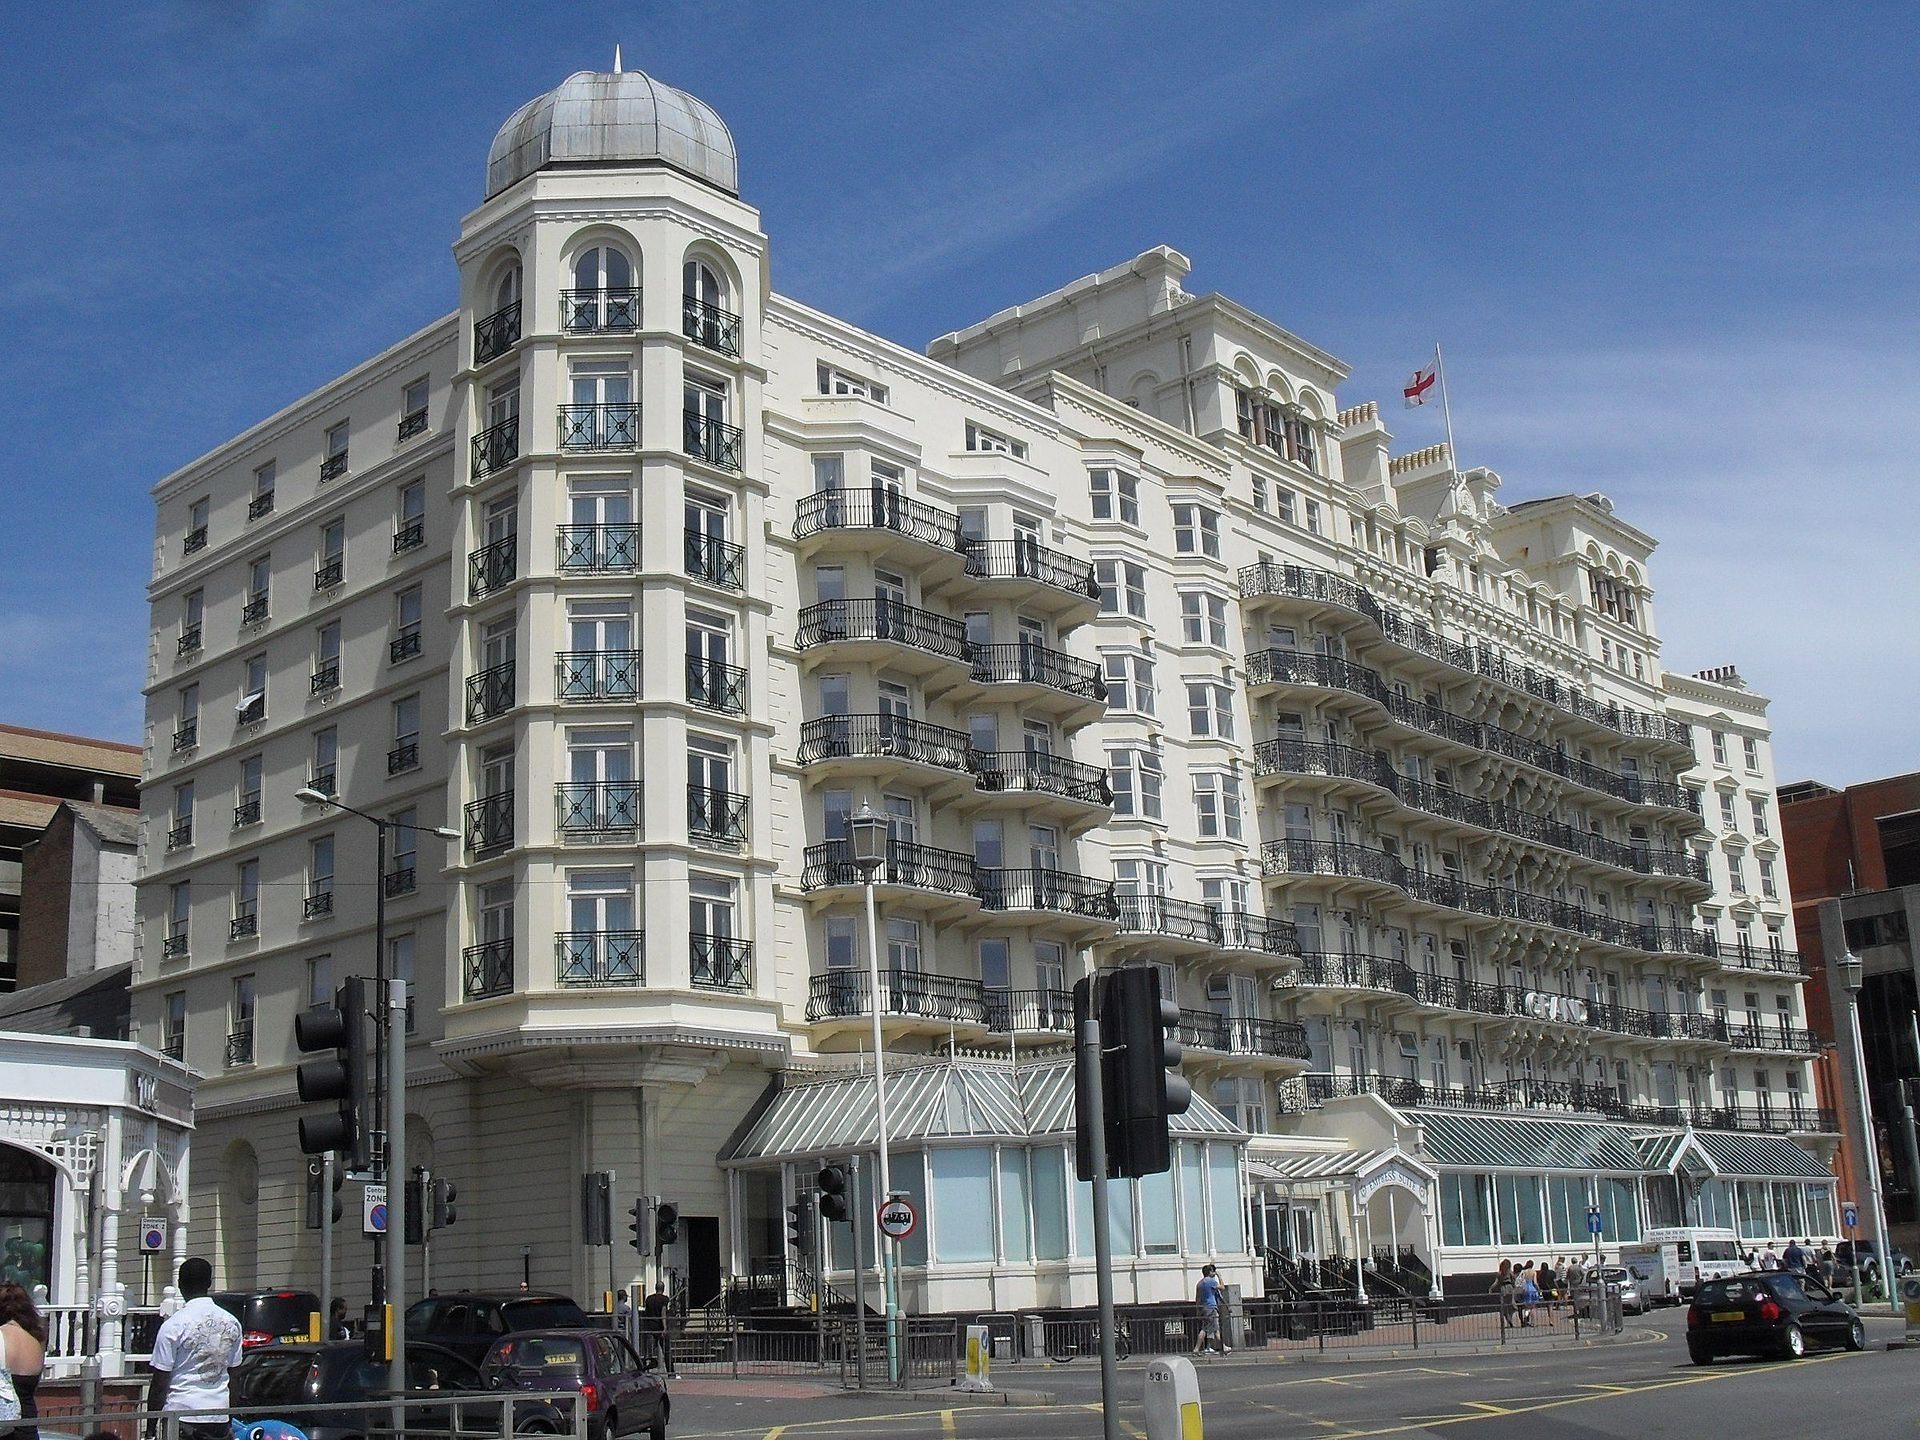 Grand brighton hotel wikipedia for Design hotels wiki